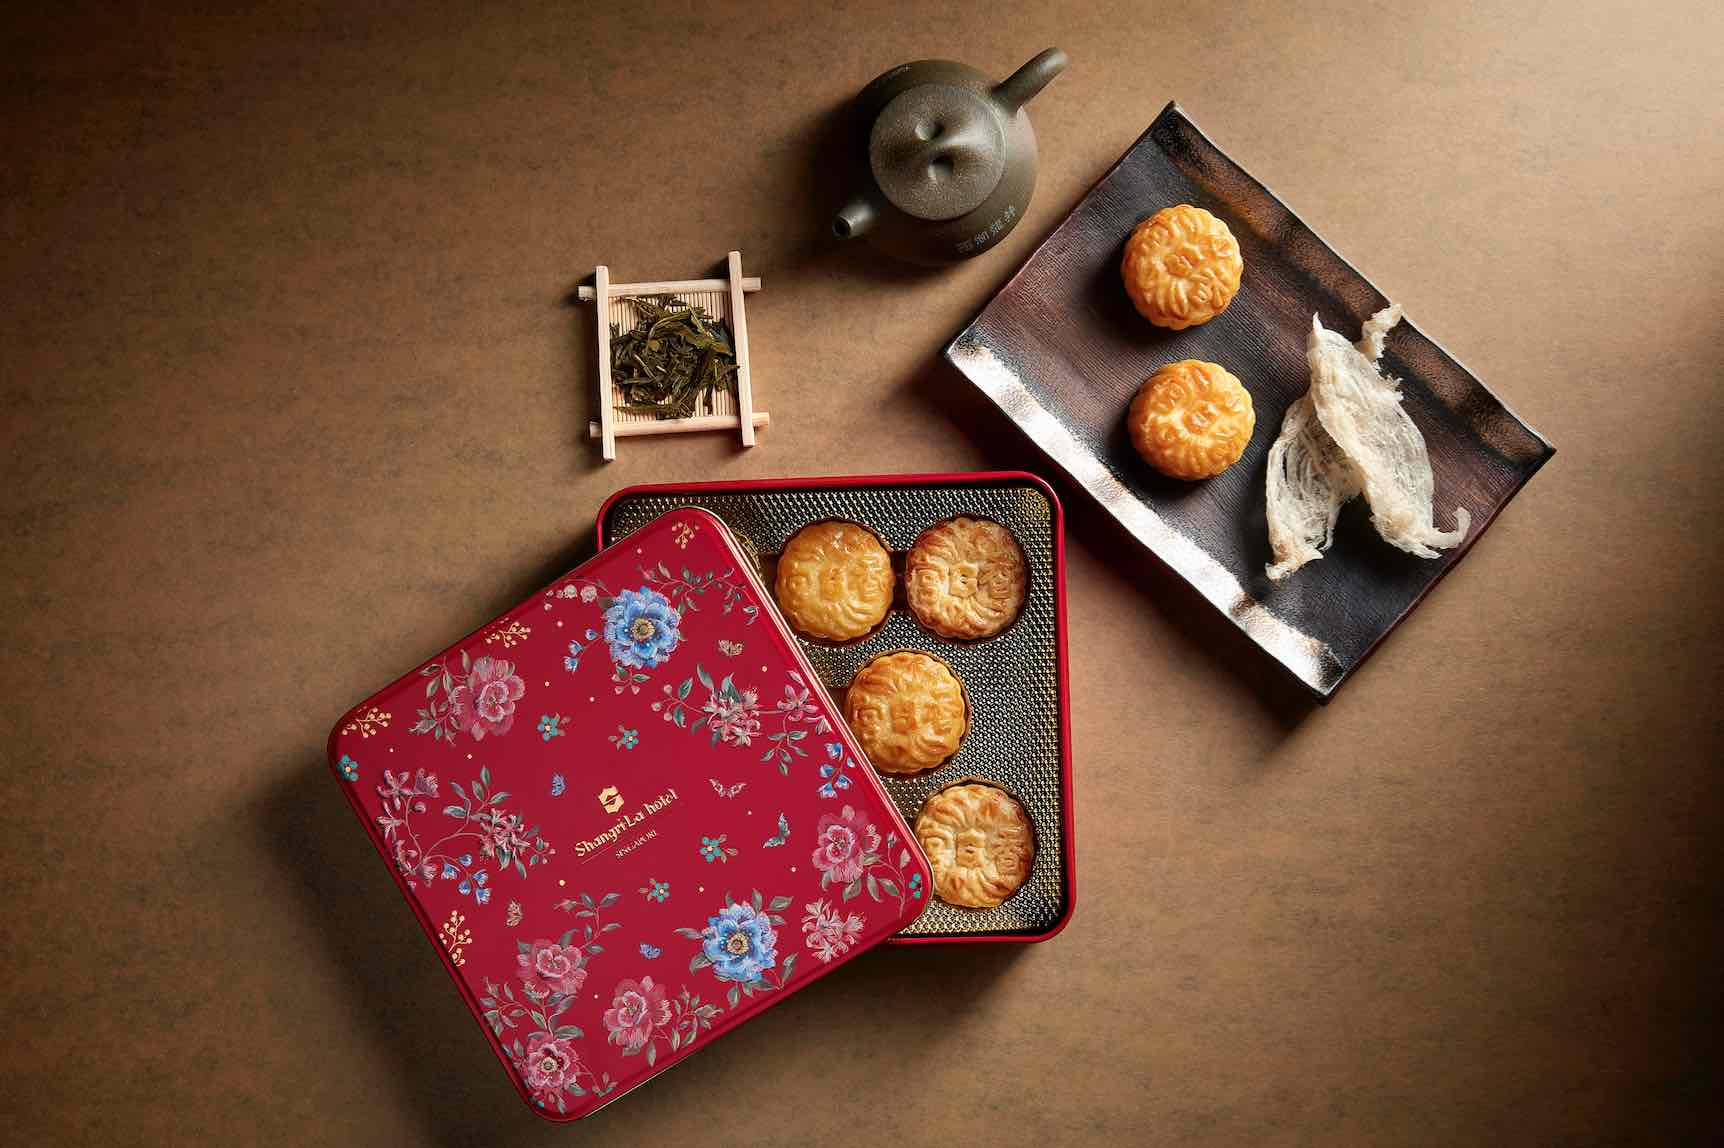 Shangri-La Mooncake 2020 – Limited Edition Collaboration With Local Artist